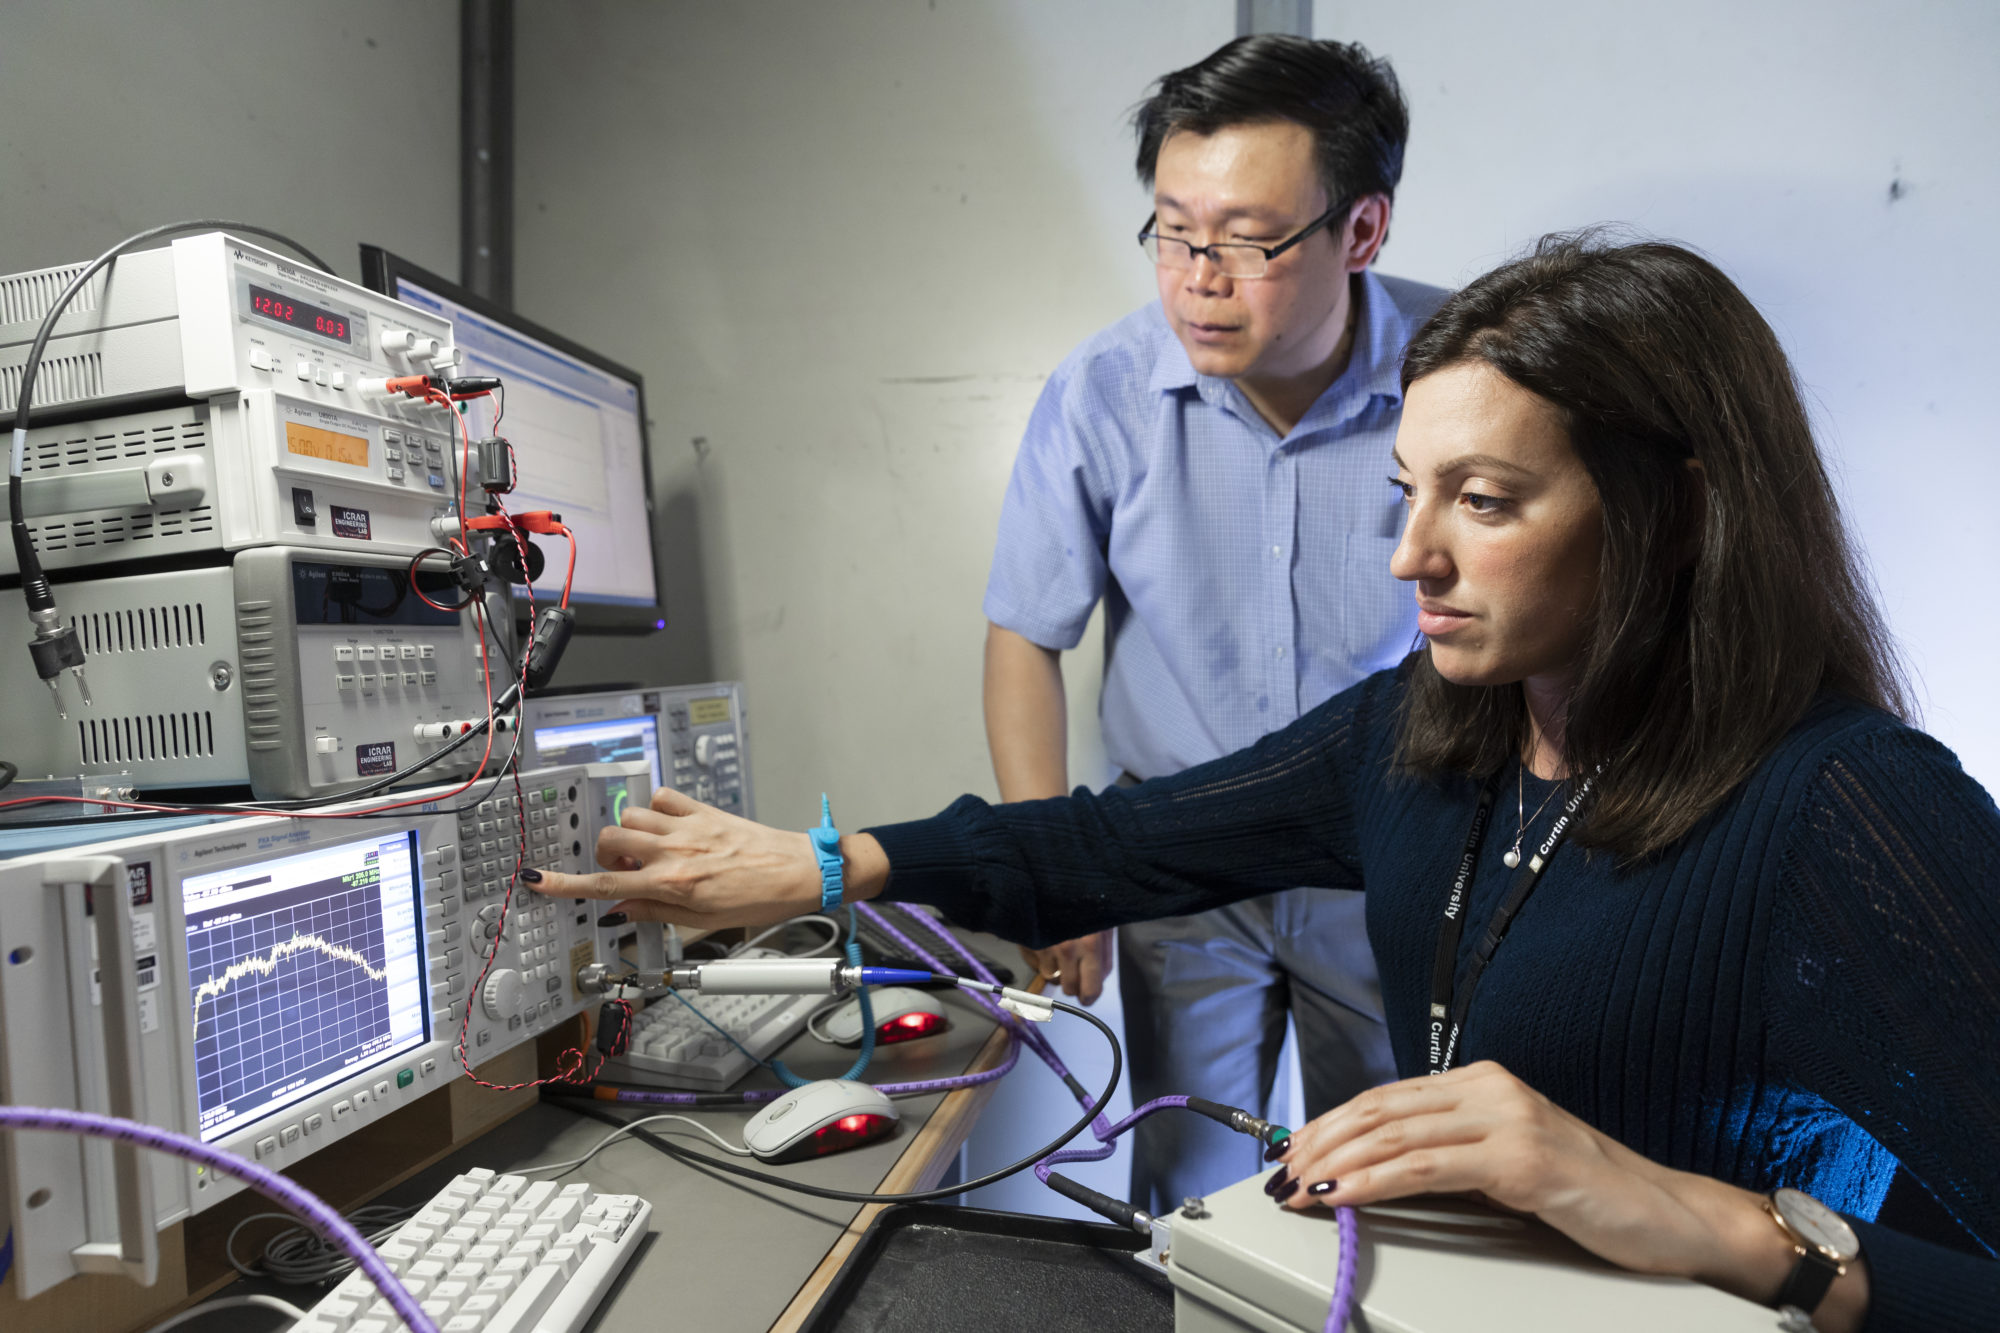 Dr Maria Kovaleva and Dr Budi Juswardy characterising a radio frequency device in our RF laboratory.